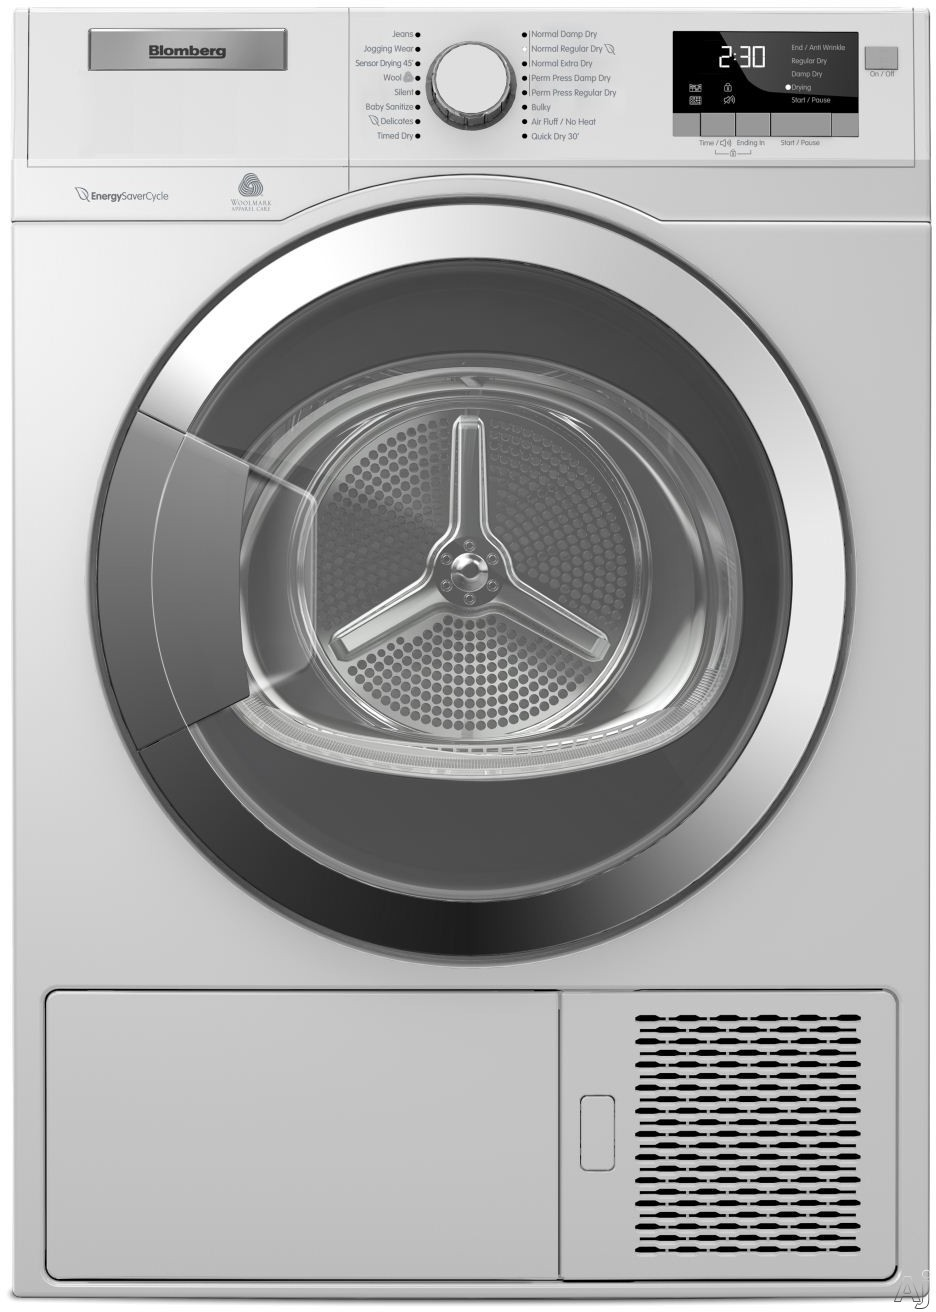 Blomberg DHP24412W 24 Inch 4.1 cu. ft. Ventless Electric Dryer with OptiSense Sensor Drying Anti Creasing Cycle Stacking Kit 16 Dry Cycles Aquawave Structured Stainless Steel Drum and ENERGY STAR